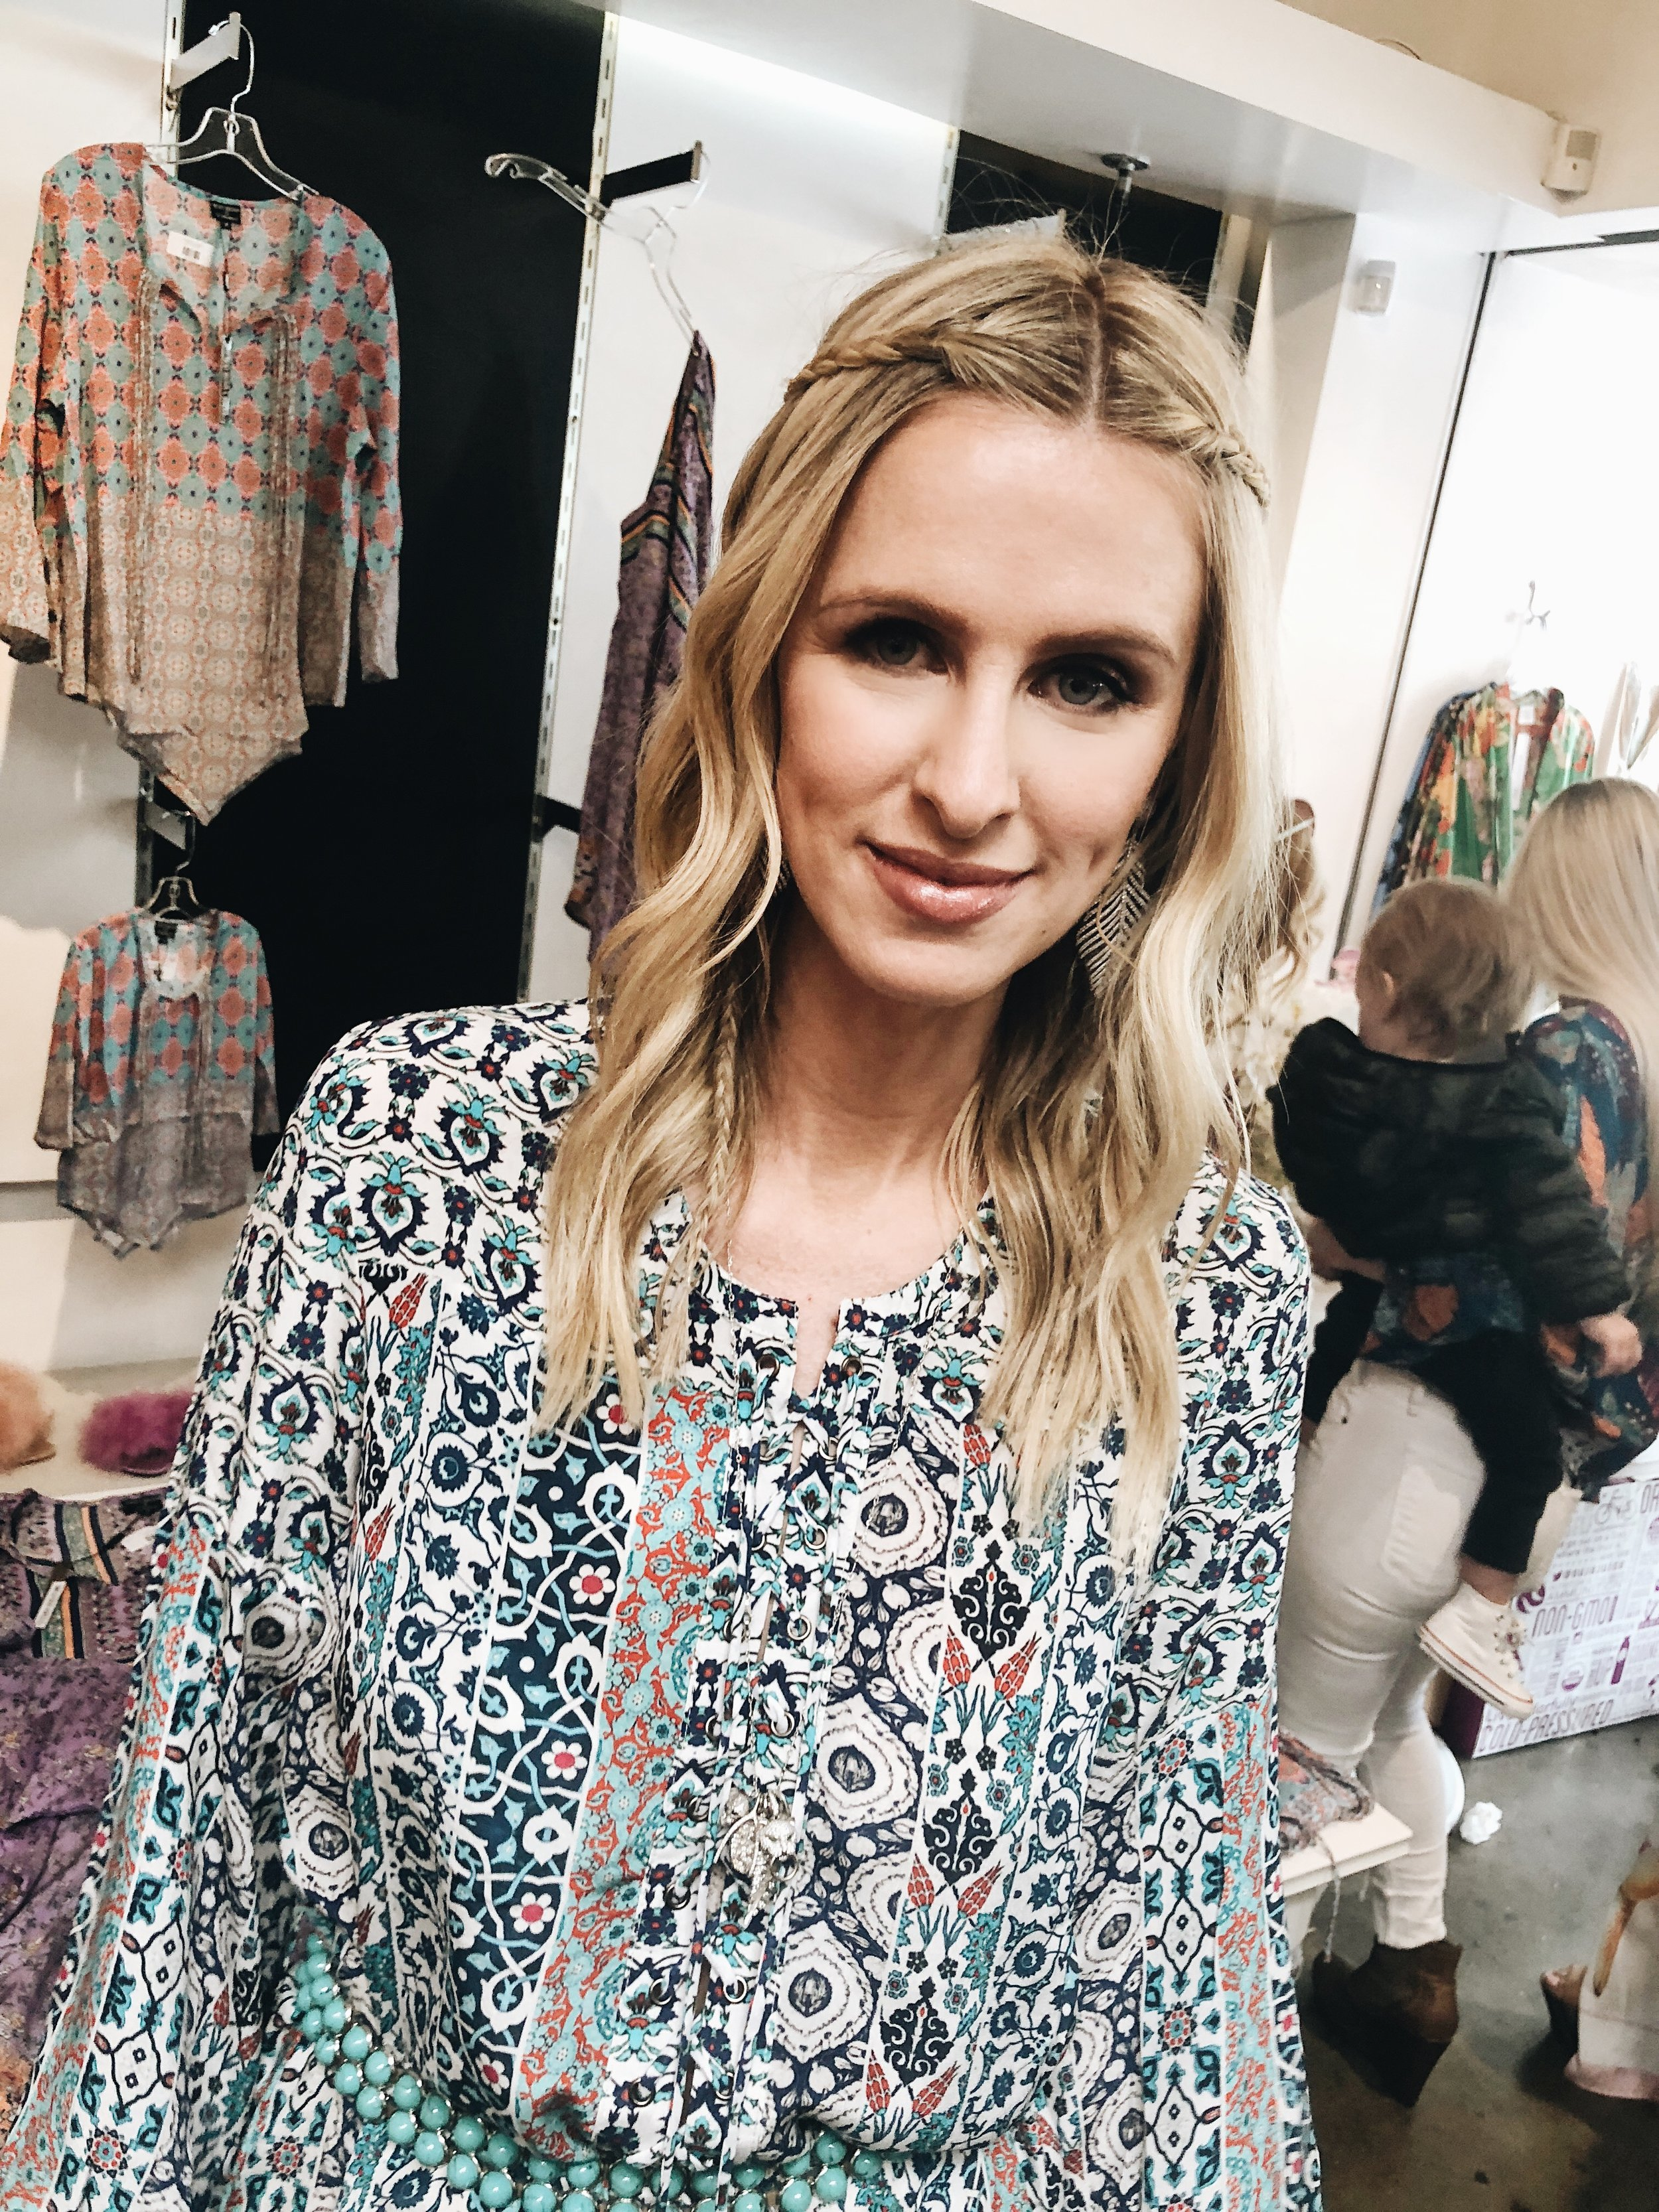 Nicky Hilton was super friendly and sweet. Her mom, dad and sister were there in support of her collaboration!